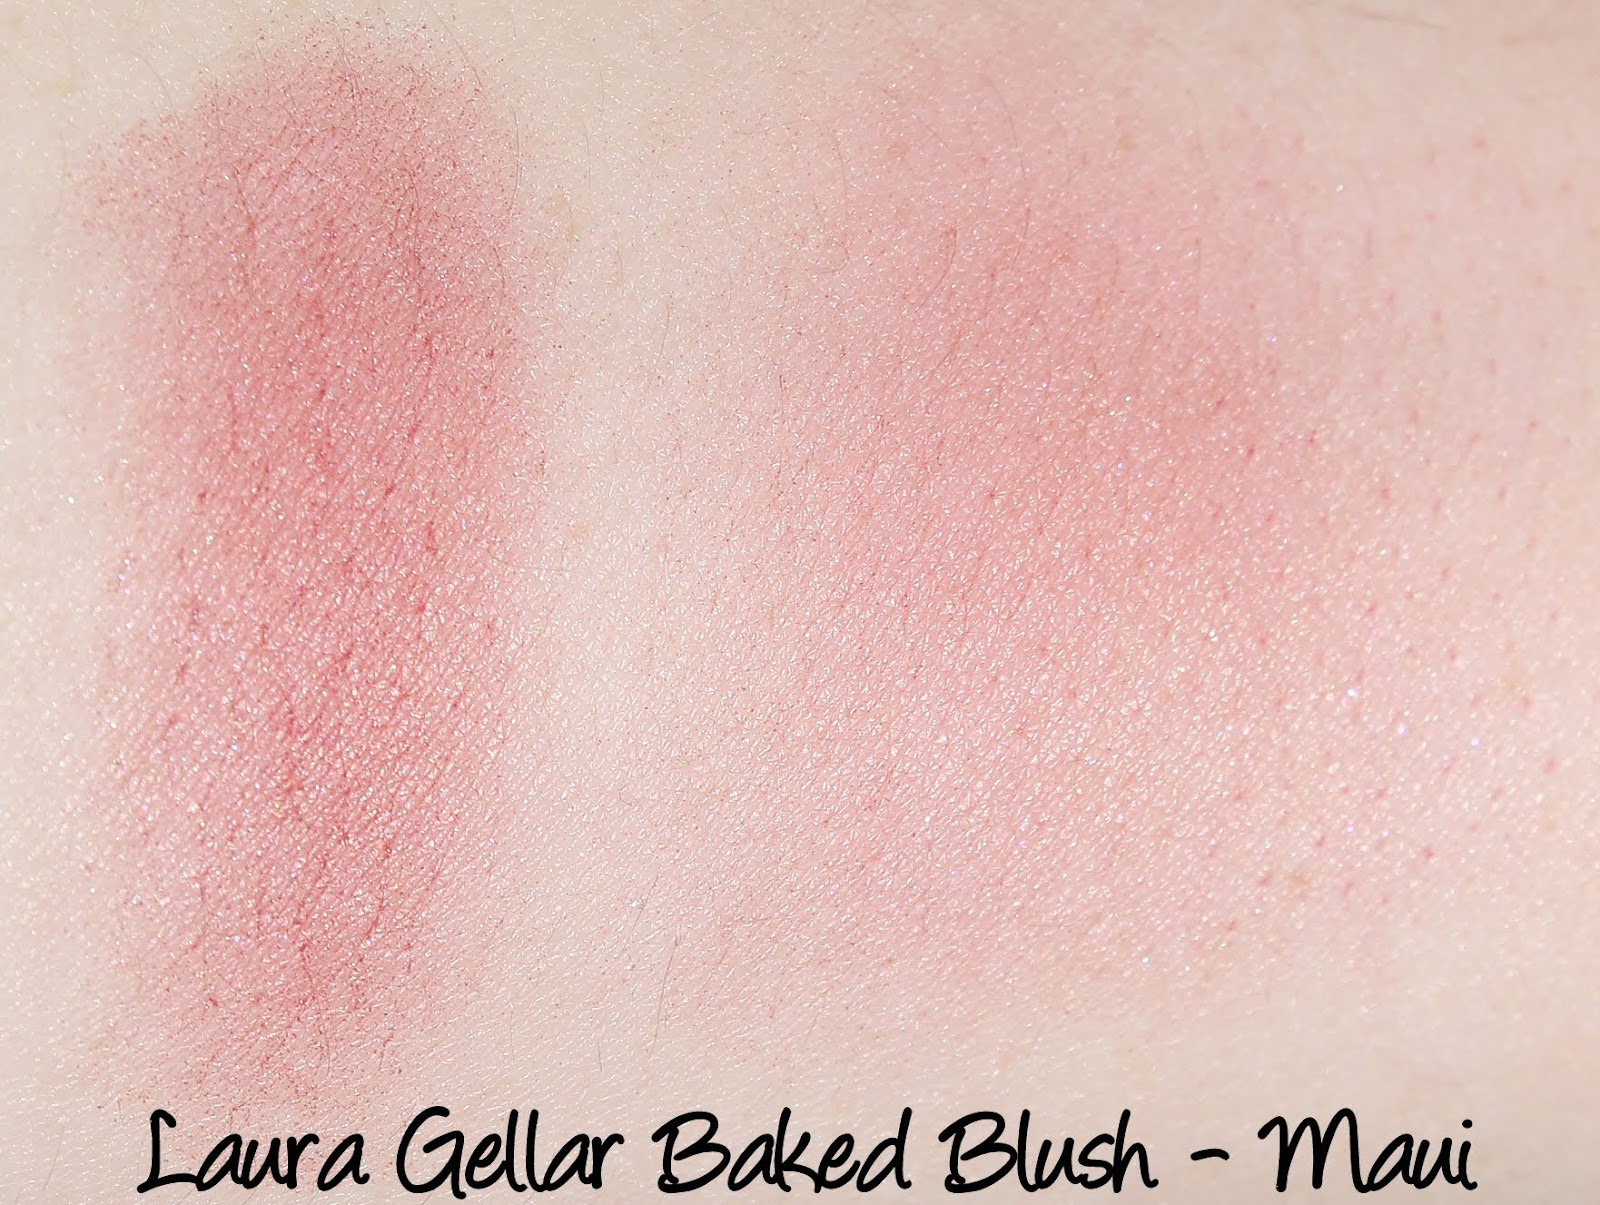 Laura Geller Baked Blush - Maui Swatches & Review